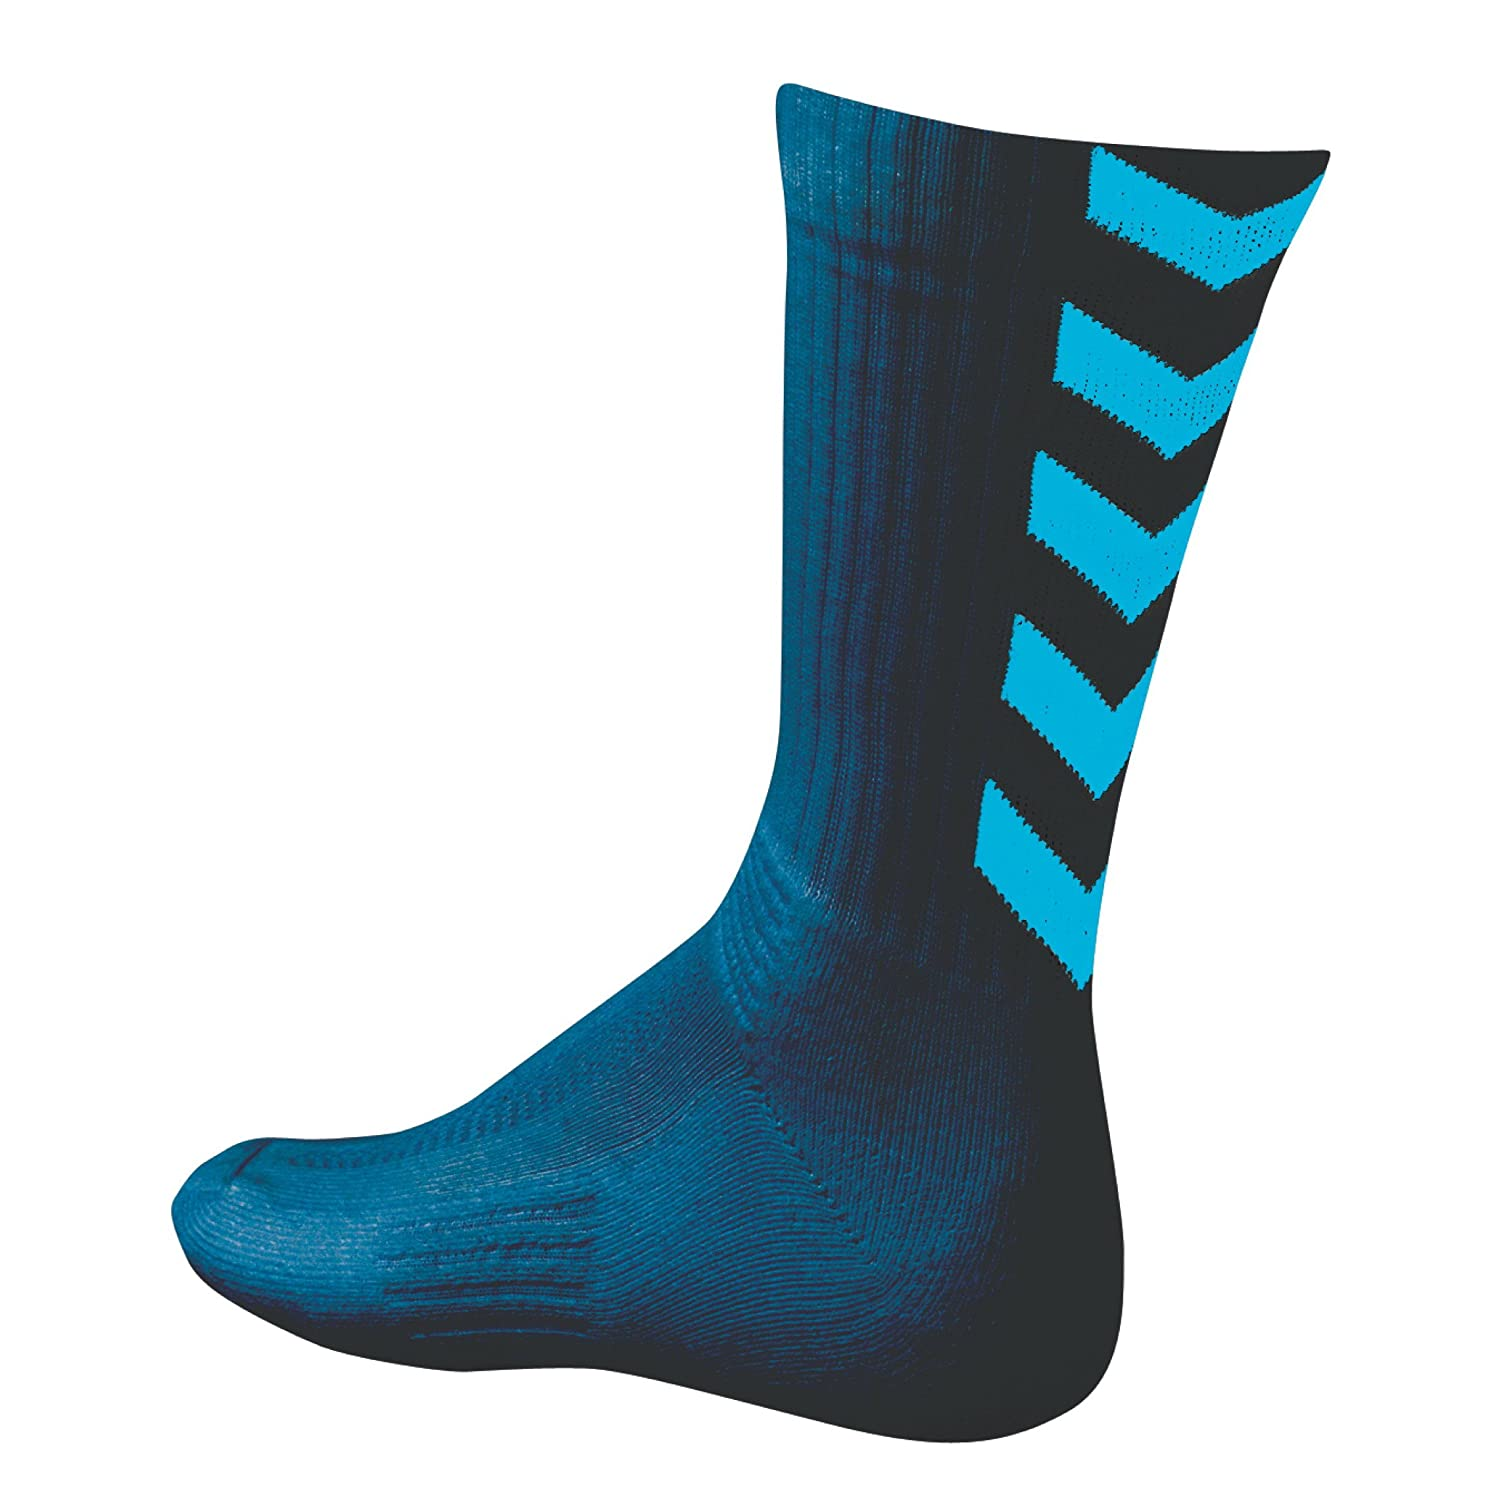 Hummel Chaussettes Authentic Indoor - Marine/Ciel: Amazon.es: Deportes y aire libre